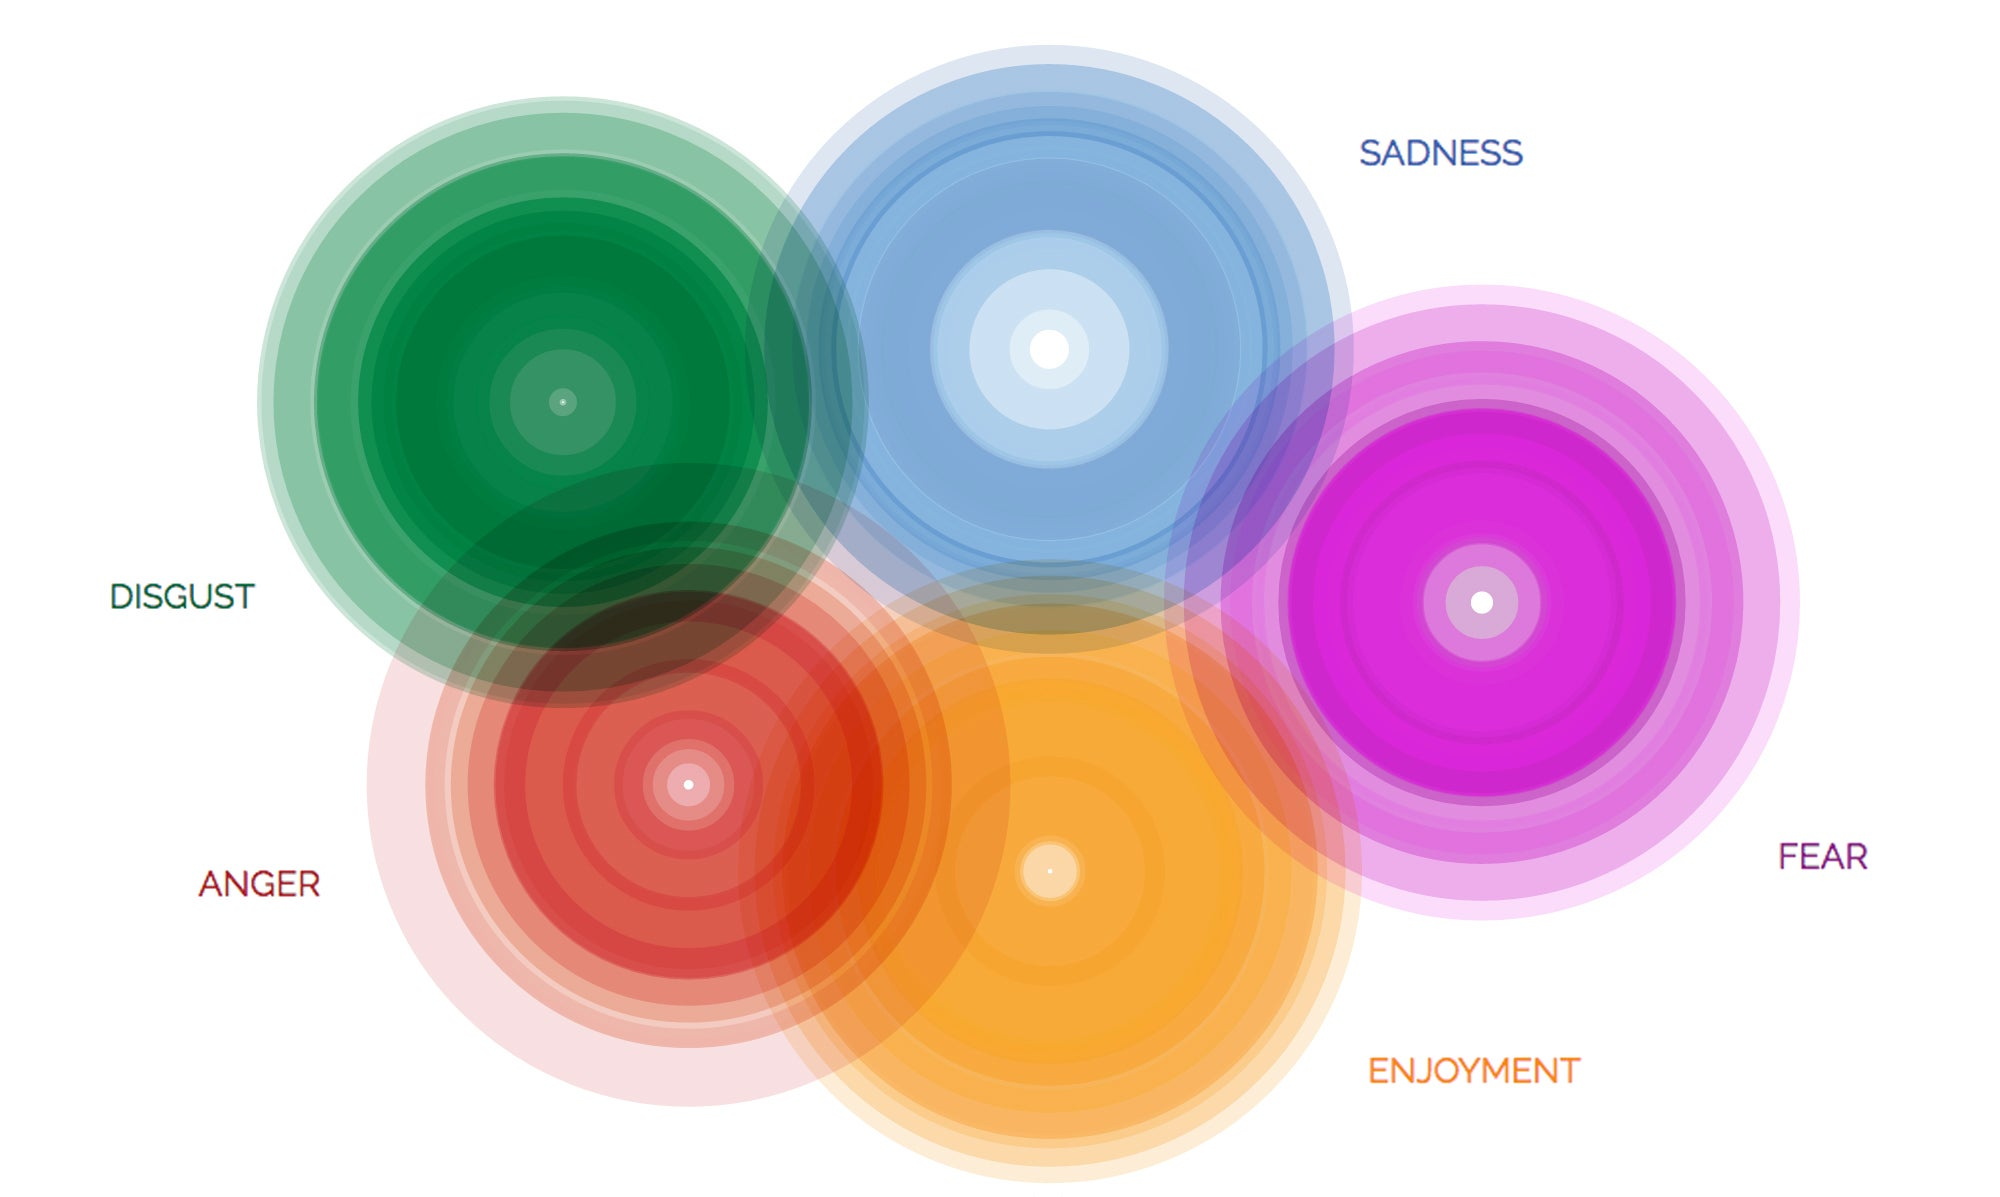 The Nuances Of Emotion And Language >> Data Visualization And Feelings Scientific American Blog Network